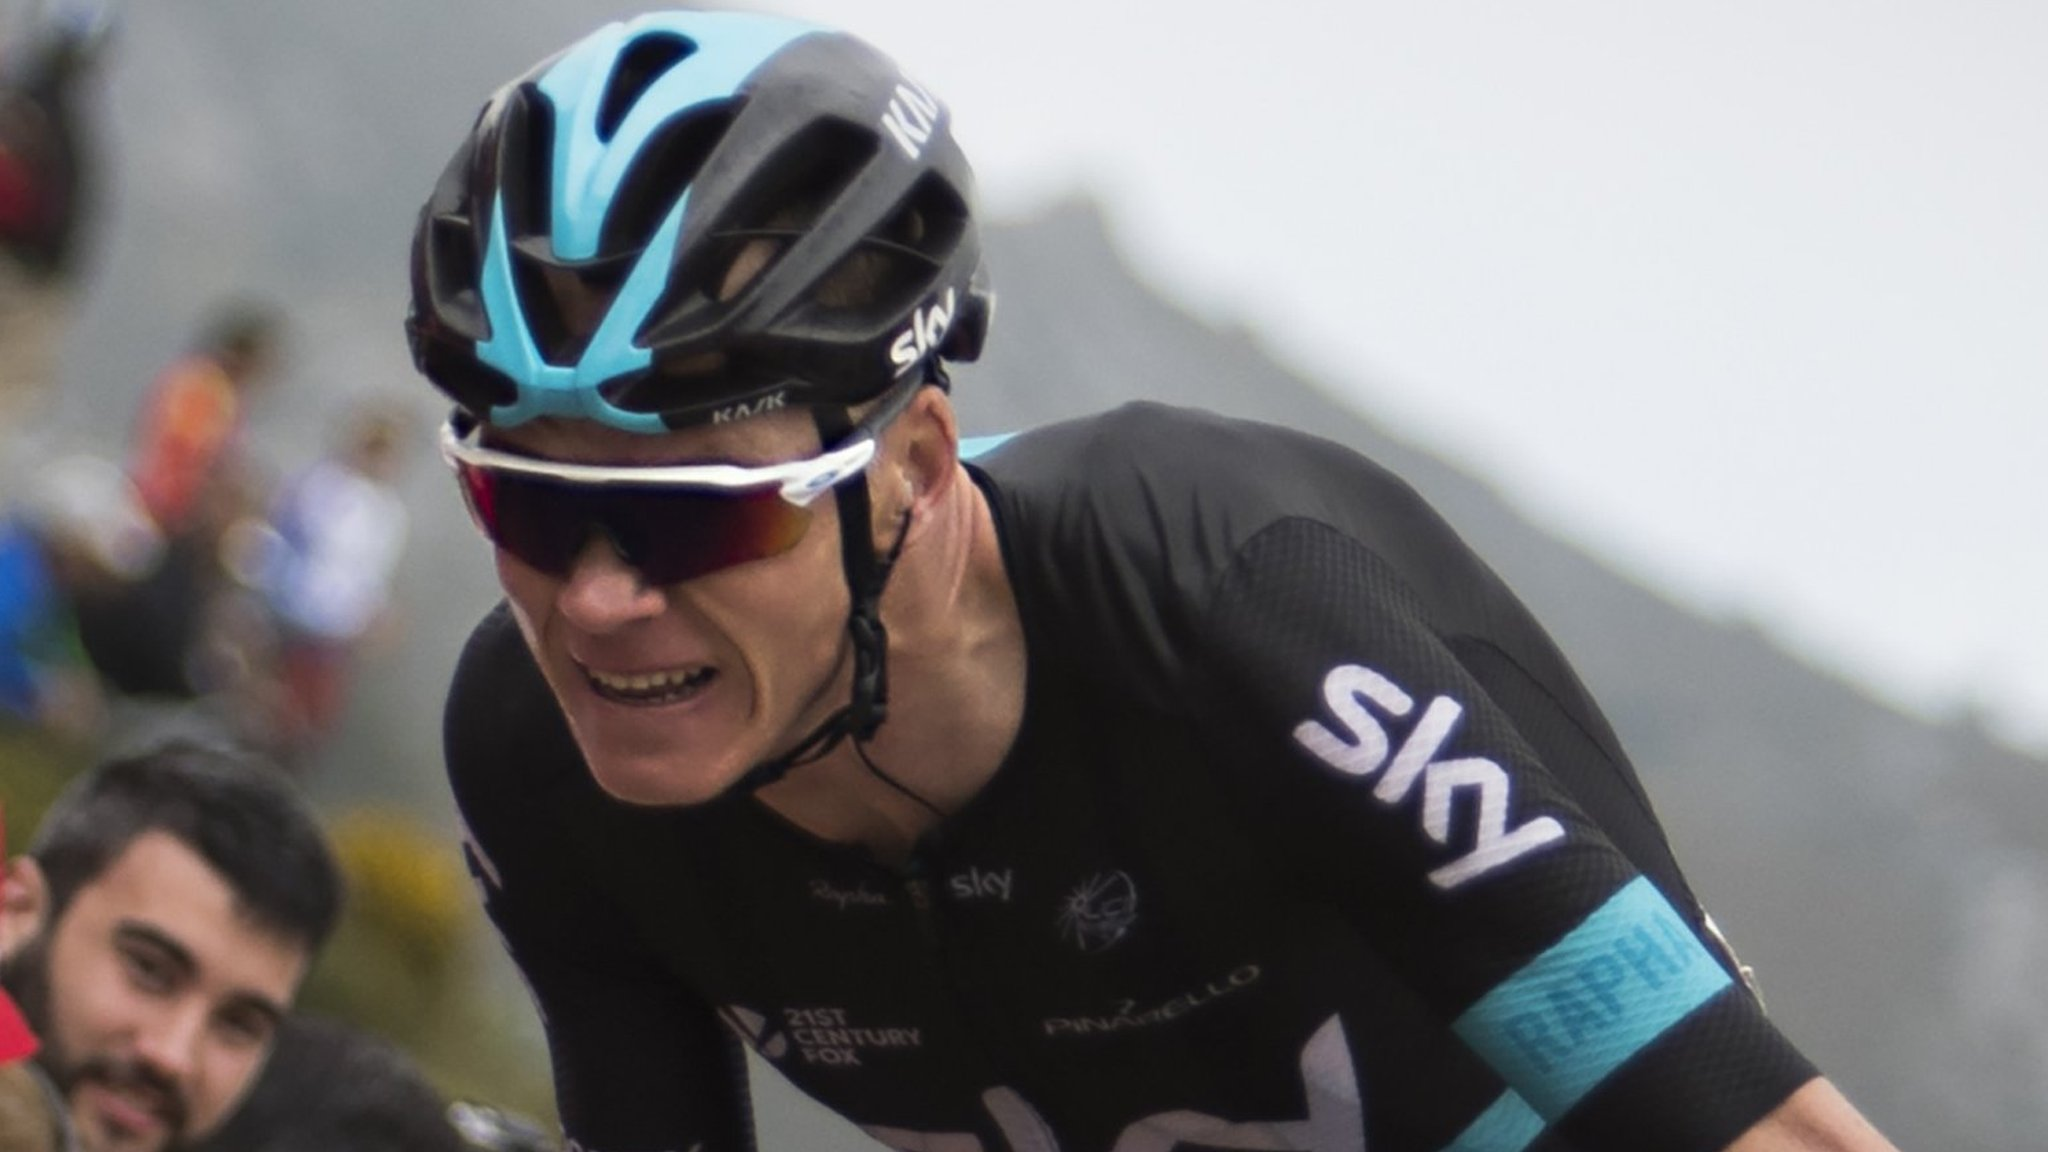 Chris Froome eyes Vuelta a Espana win: Stage-by-stage guide